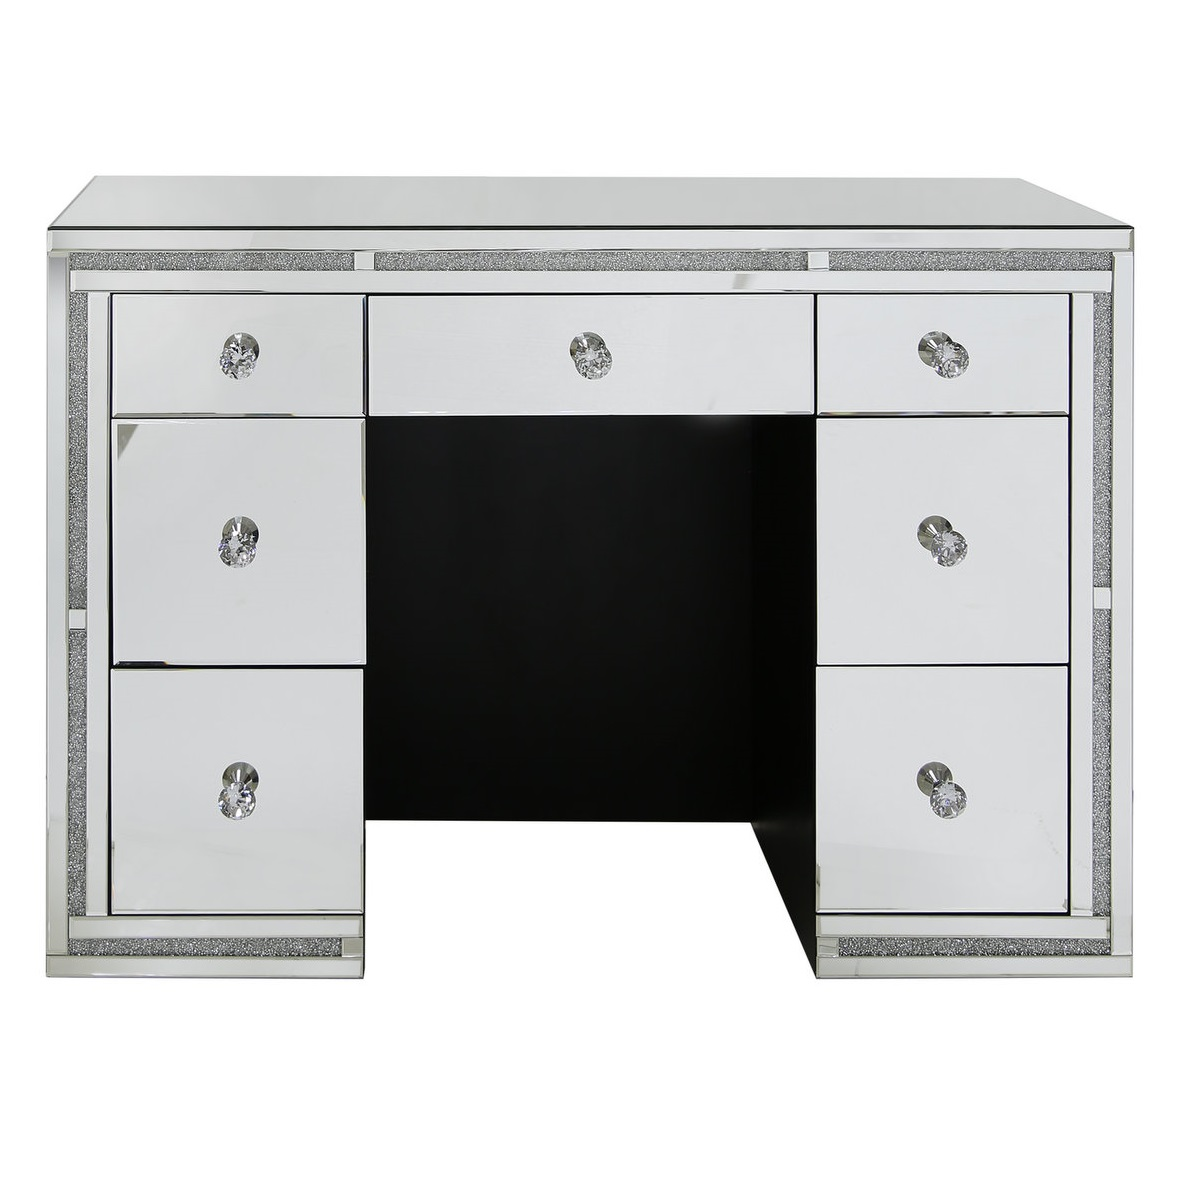 Mirrored drawer dressing table with swarovski crystals